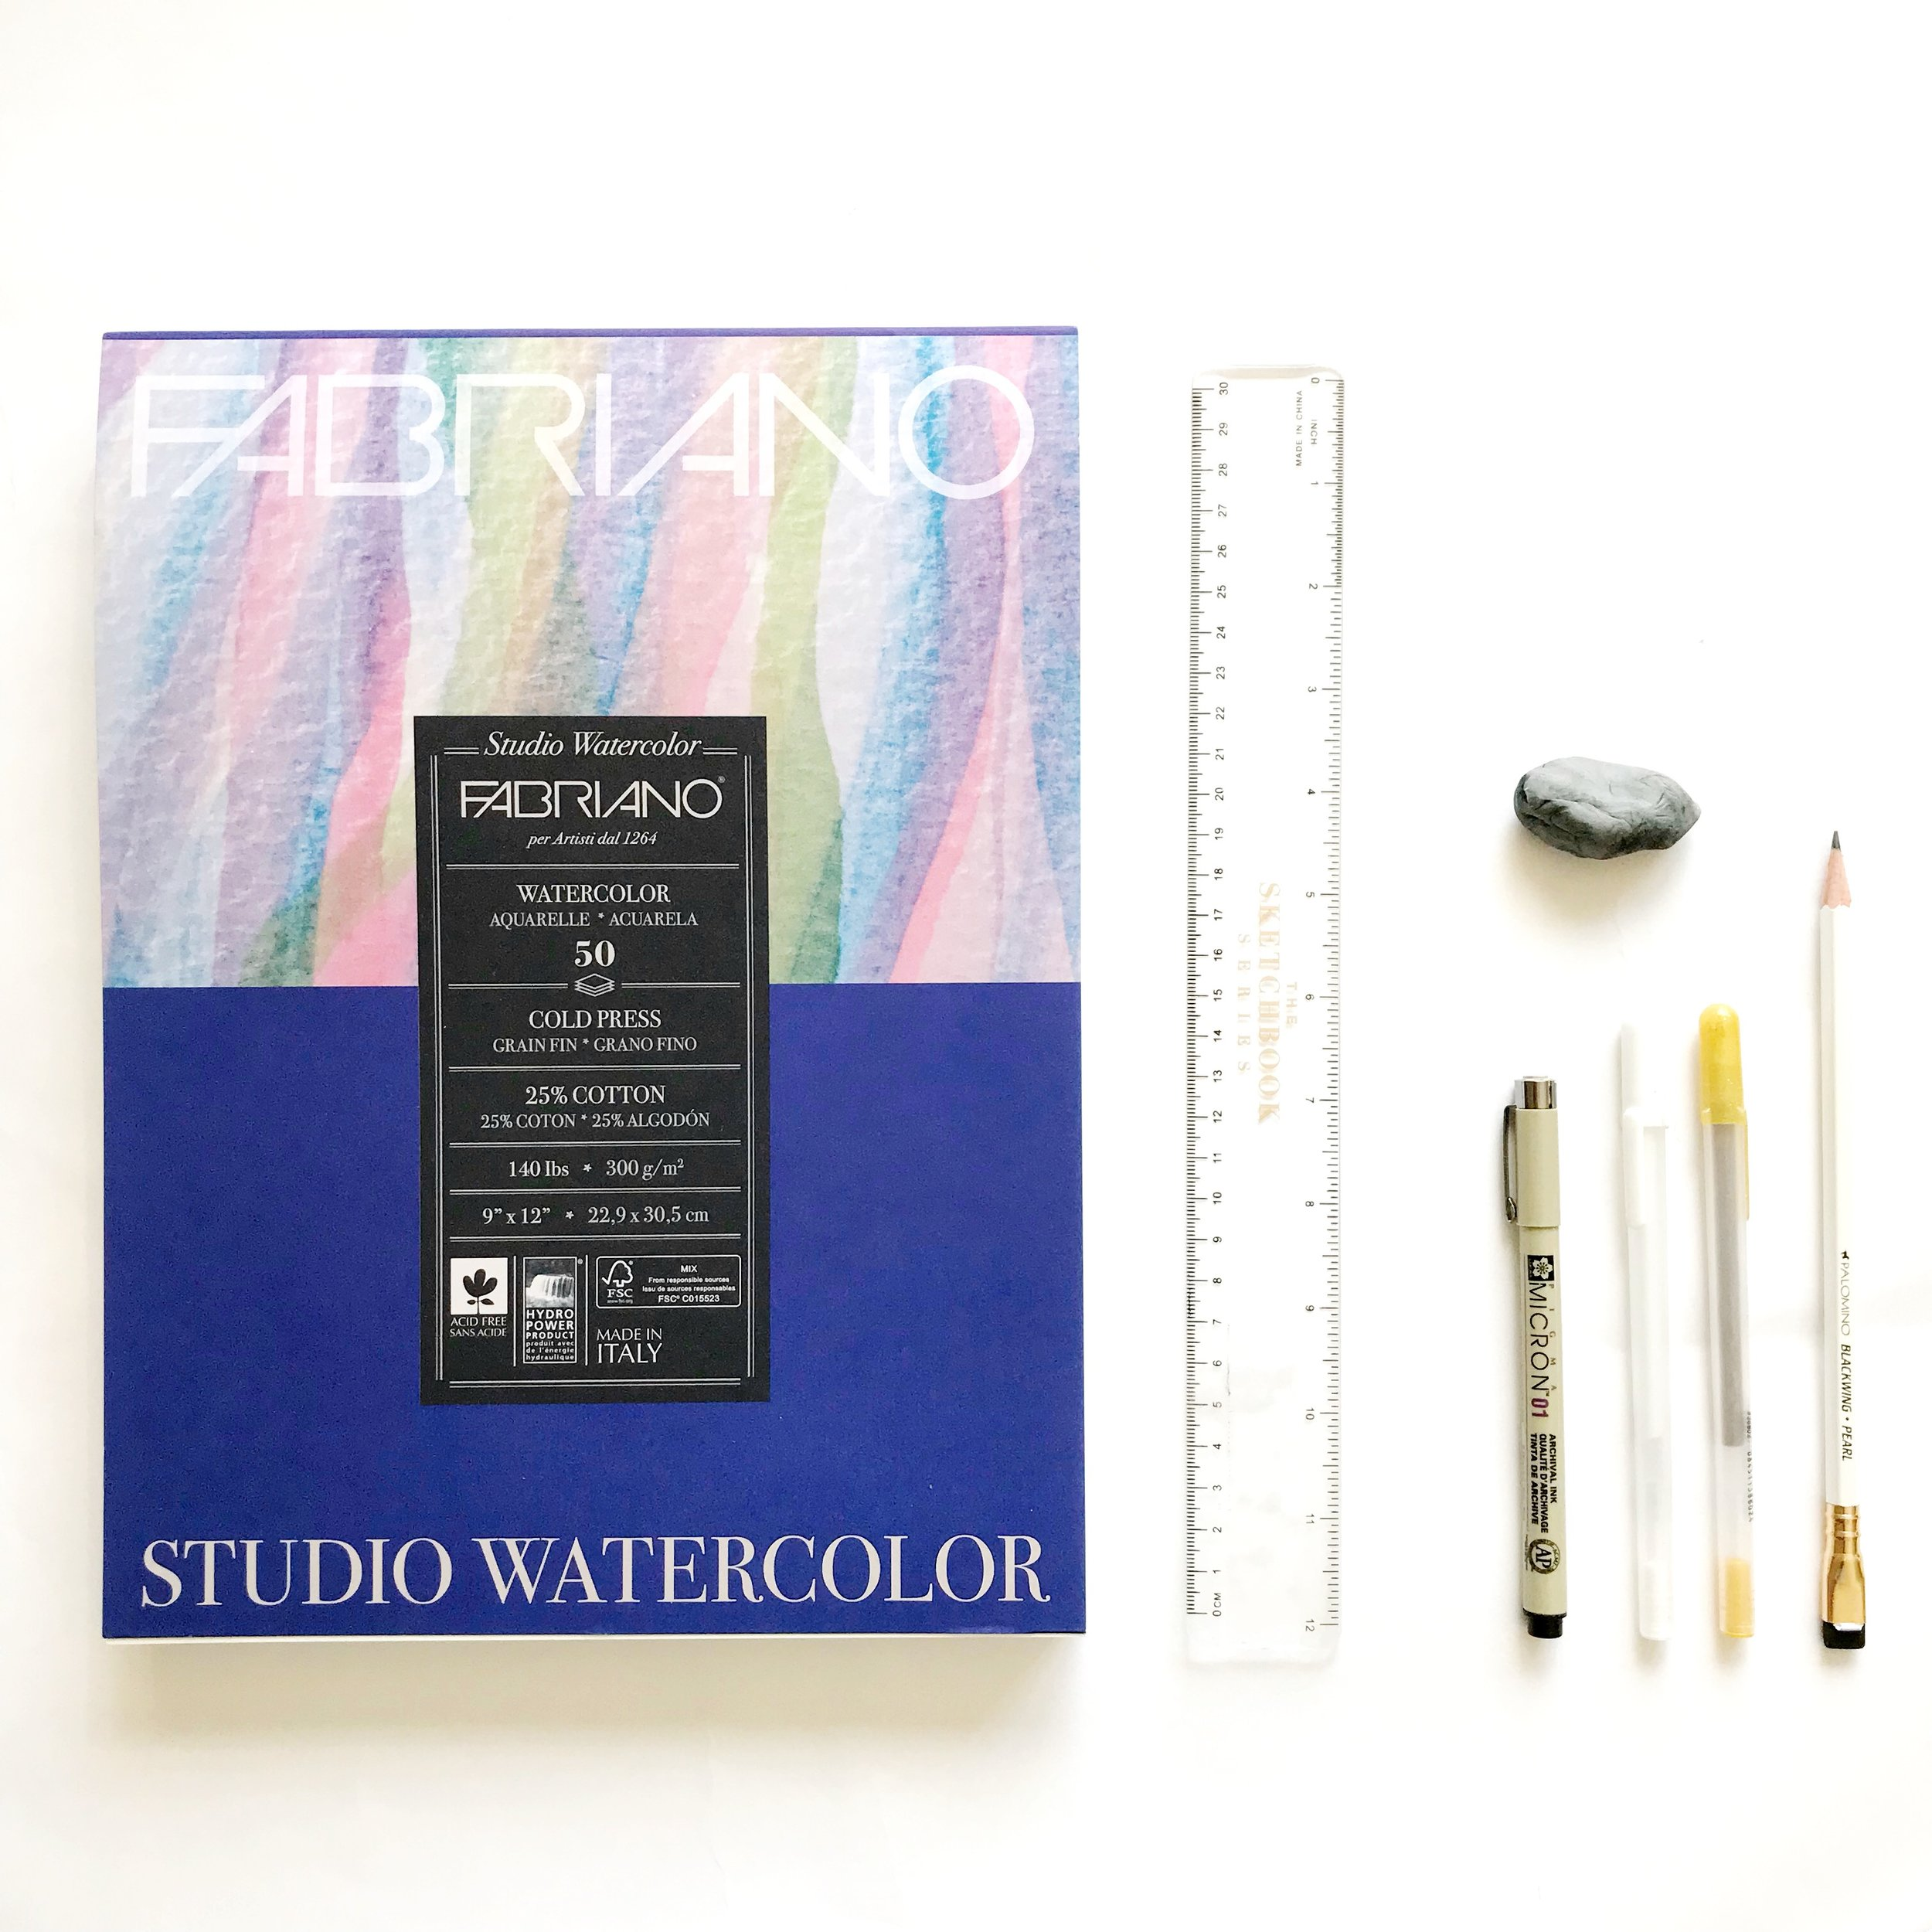 "8.5"" x 11"" Fabriano Watercolor pad 12"" Clear Ruler Graphite pencil Gold Gel Pens (Gold/White) Black 01Micron Detail Pen Kneaded Eraser  Interested in our purchasing our Basic Sketch Kit? You can purchase it  HERE .  FYI, we offer a sketchbook in our sketch kit, not the watercolor pad as shown above."